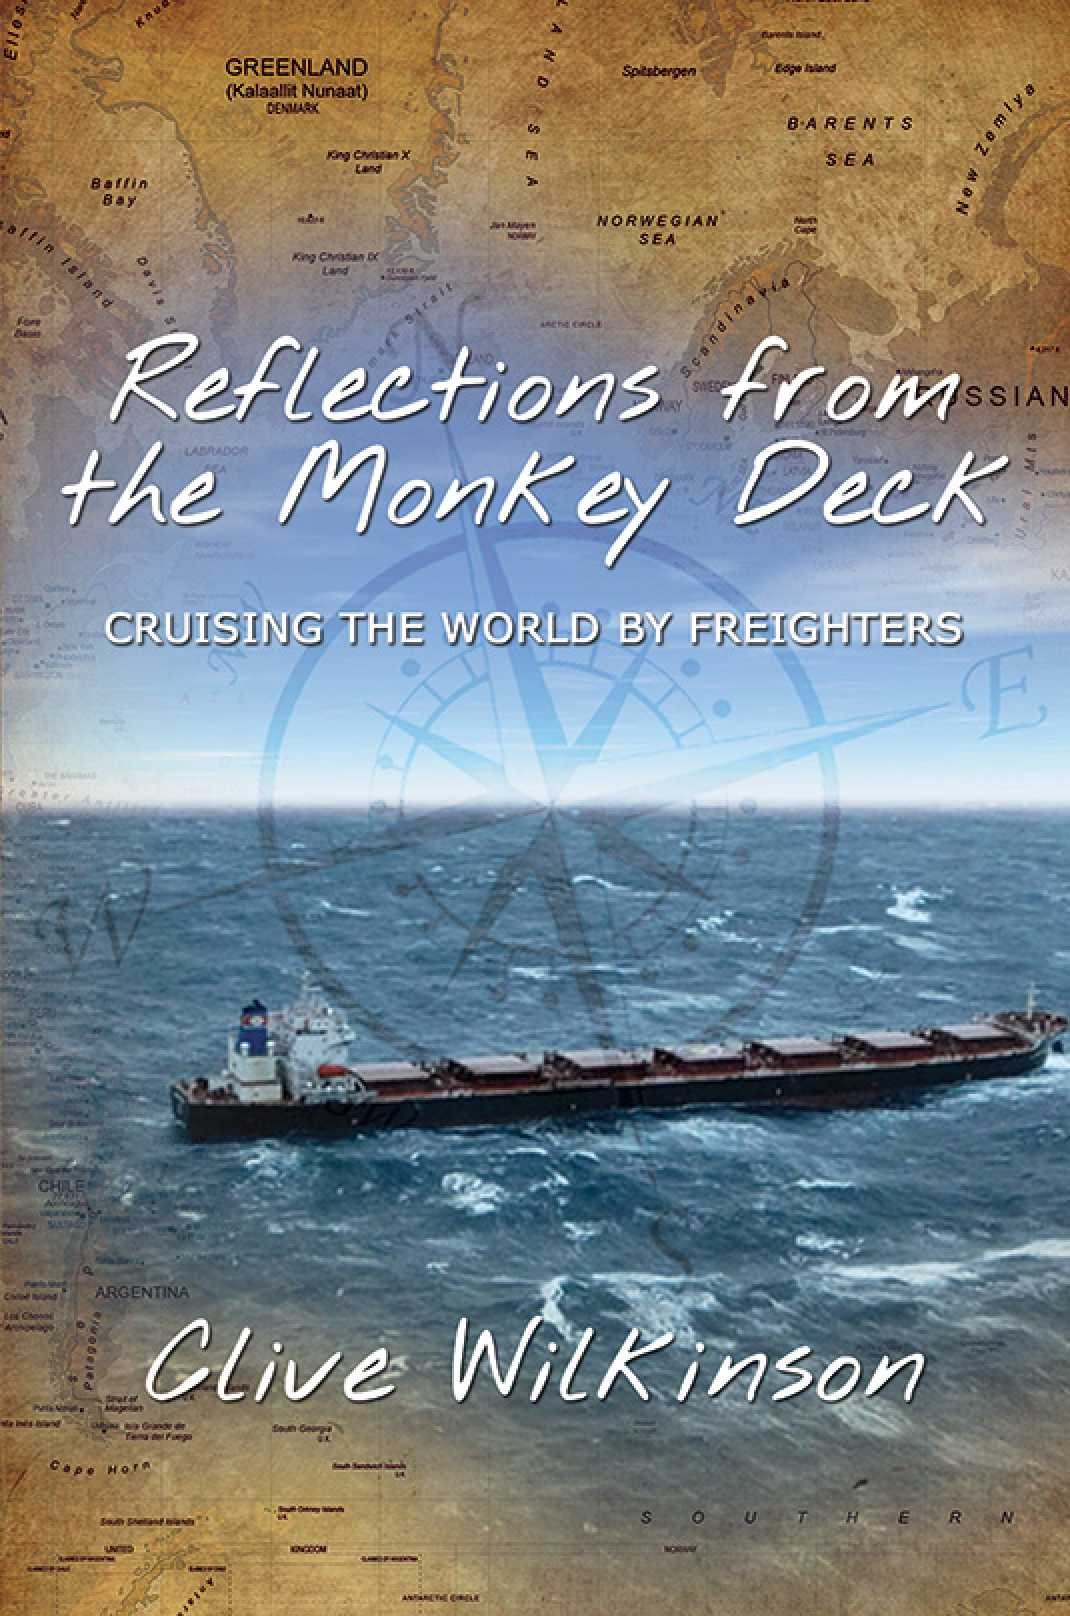 Reflections From the Monkey Deck: Cruising the World by Freighters